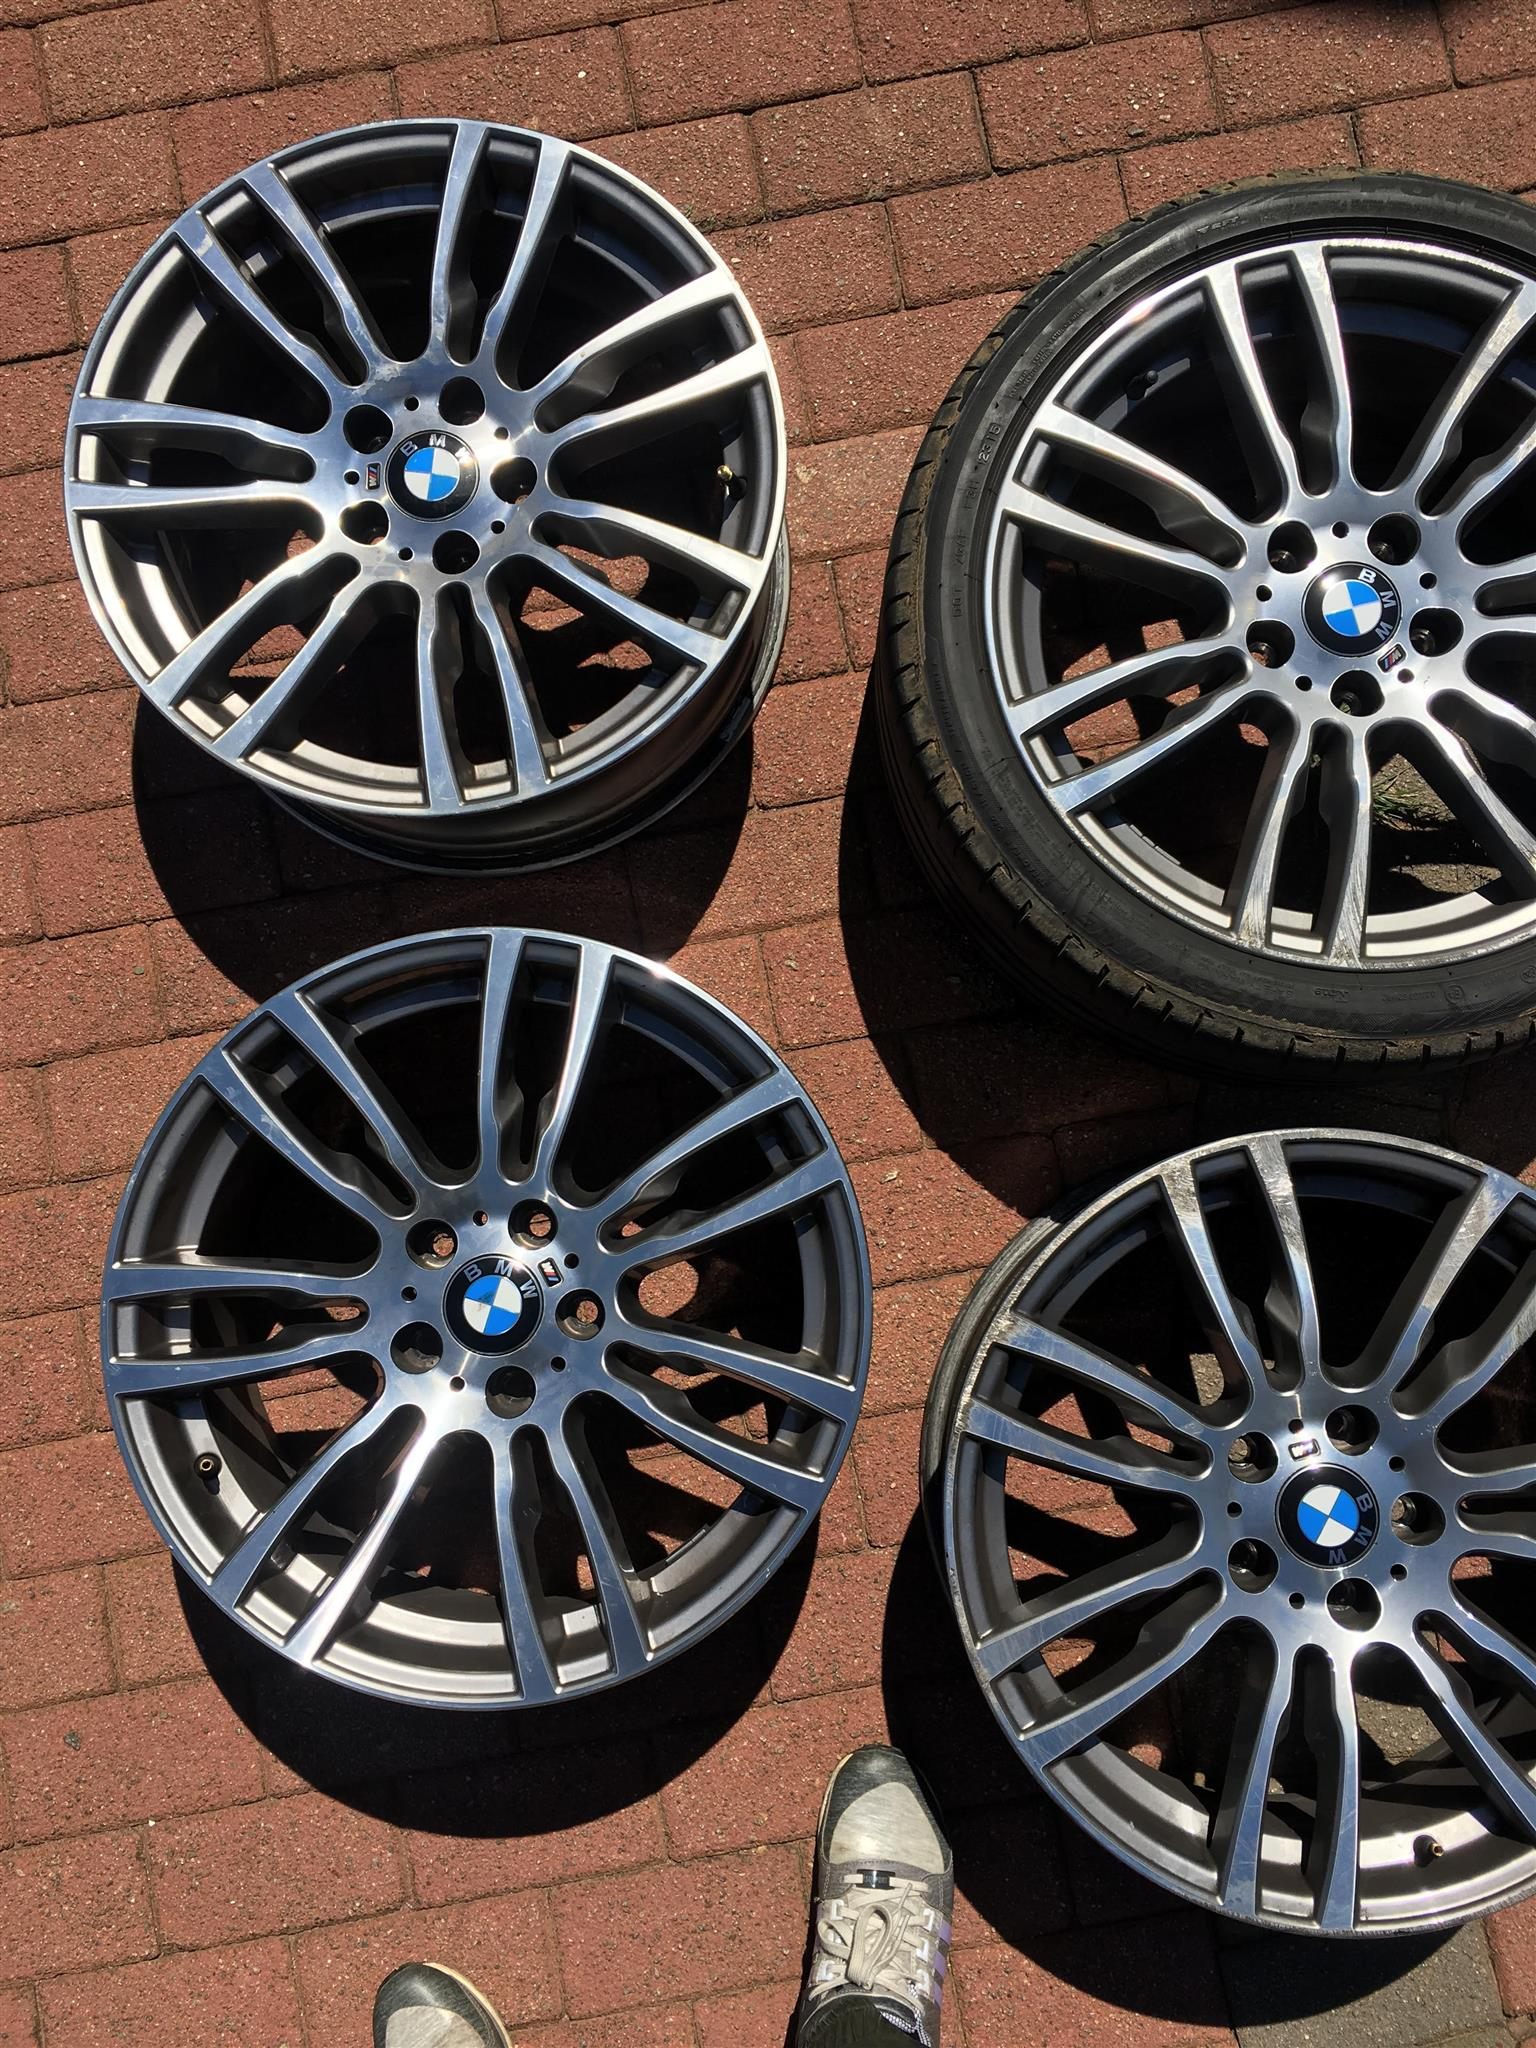 19 Inch Original Bmw F30 Msport 403 Rims Set 4 Junk Mail